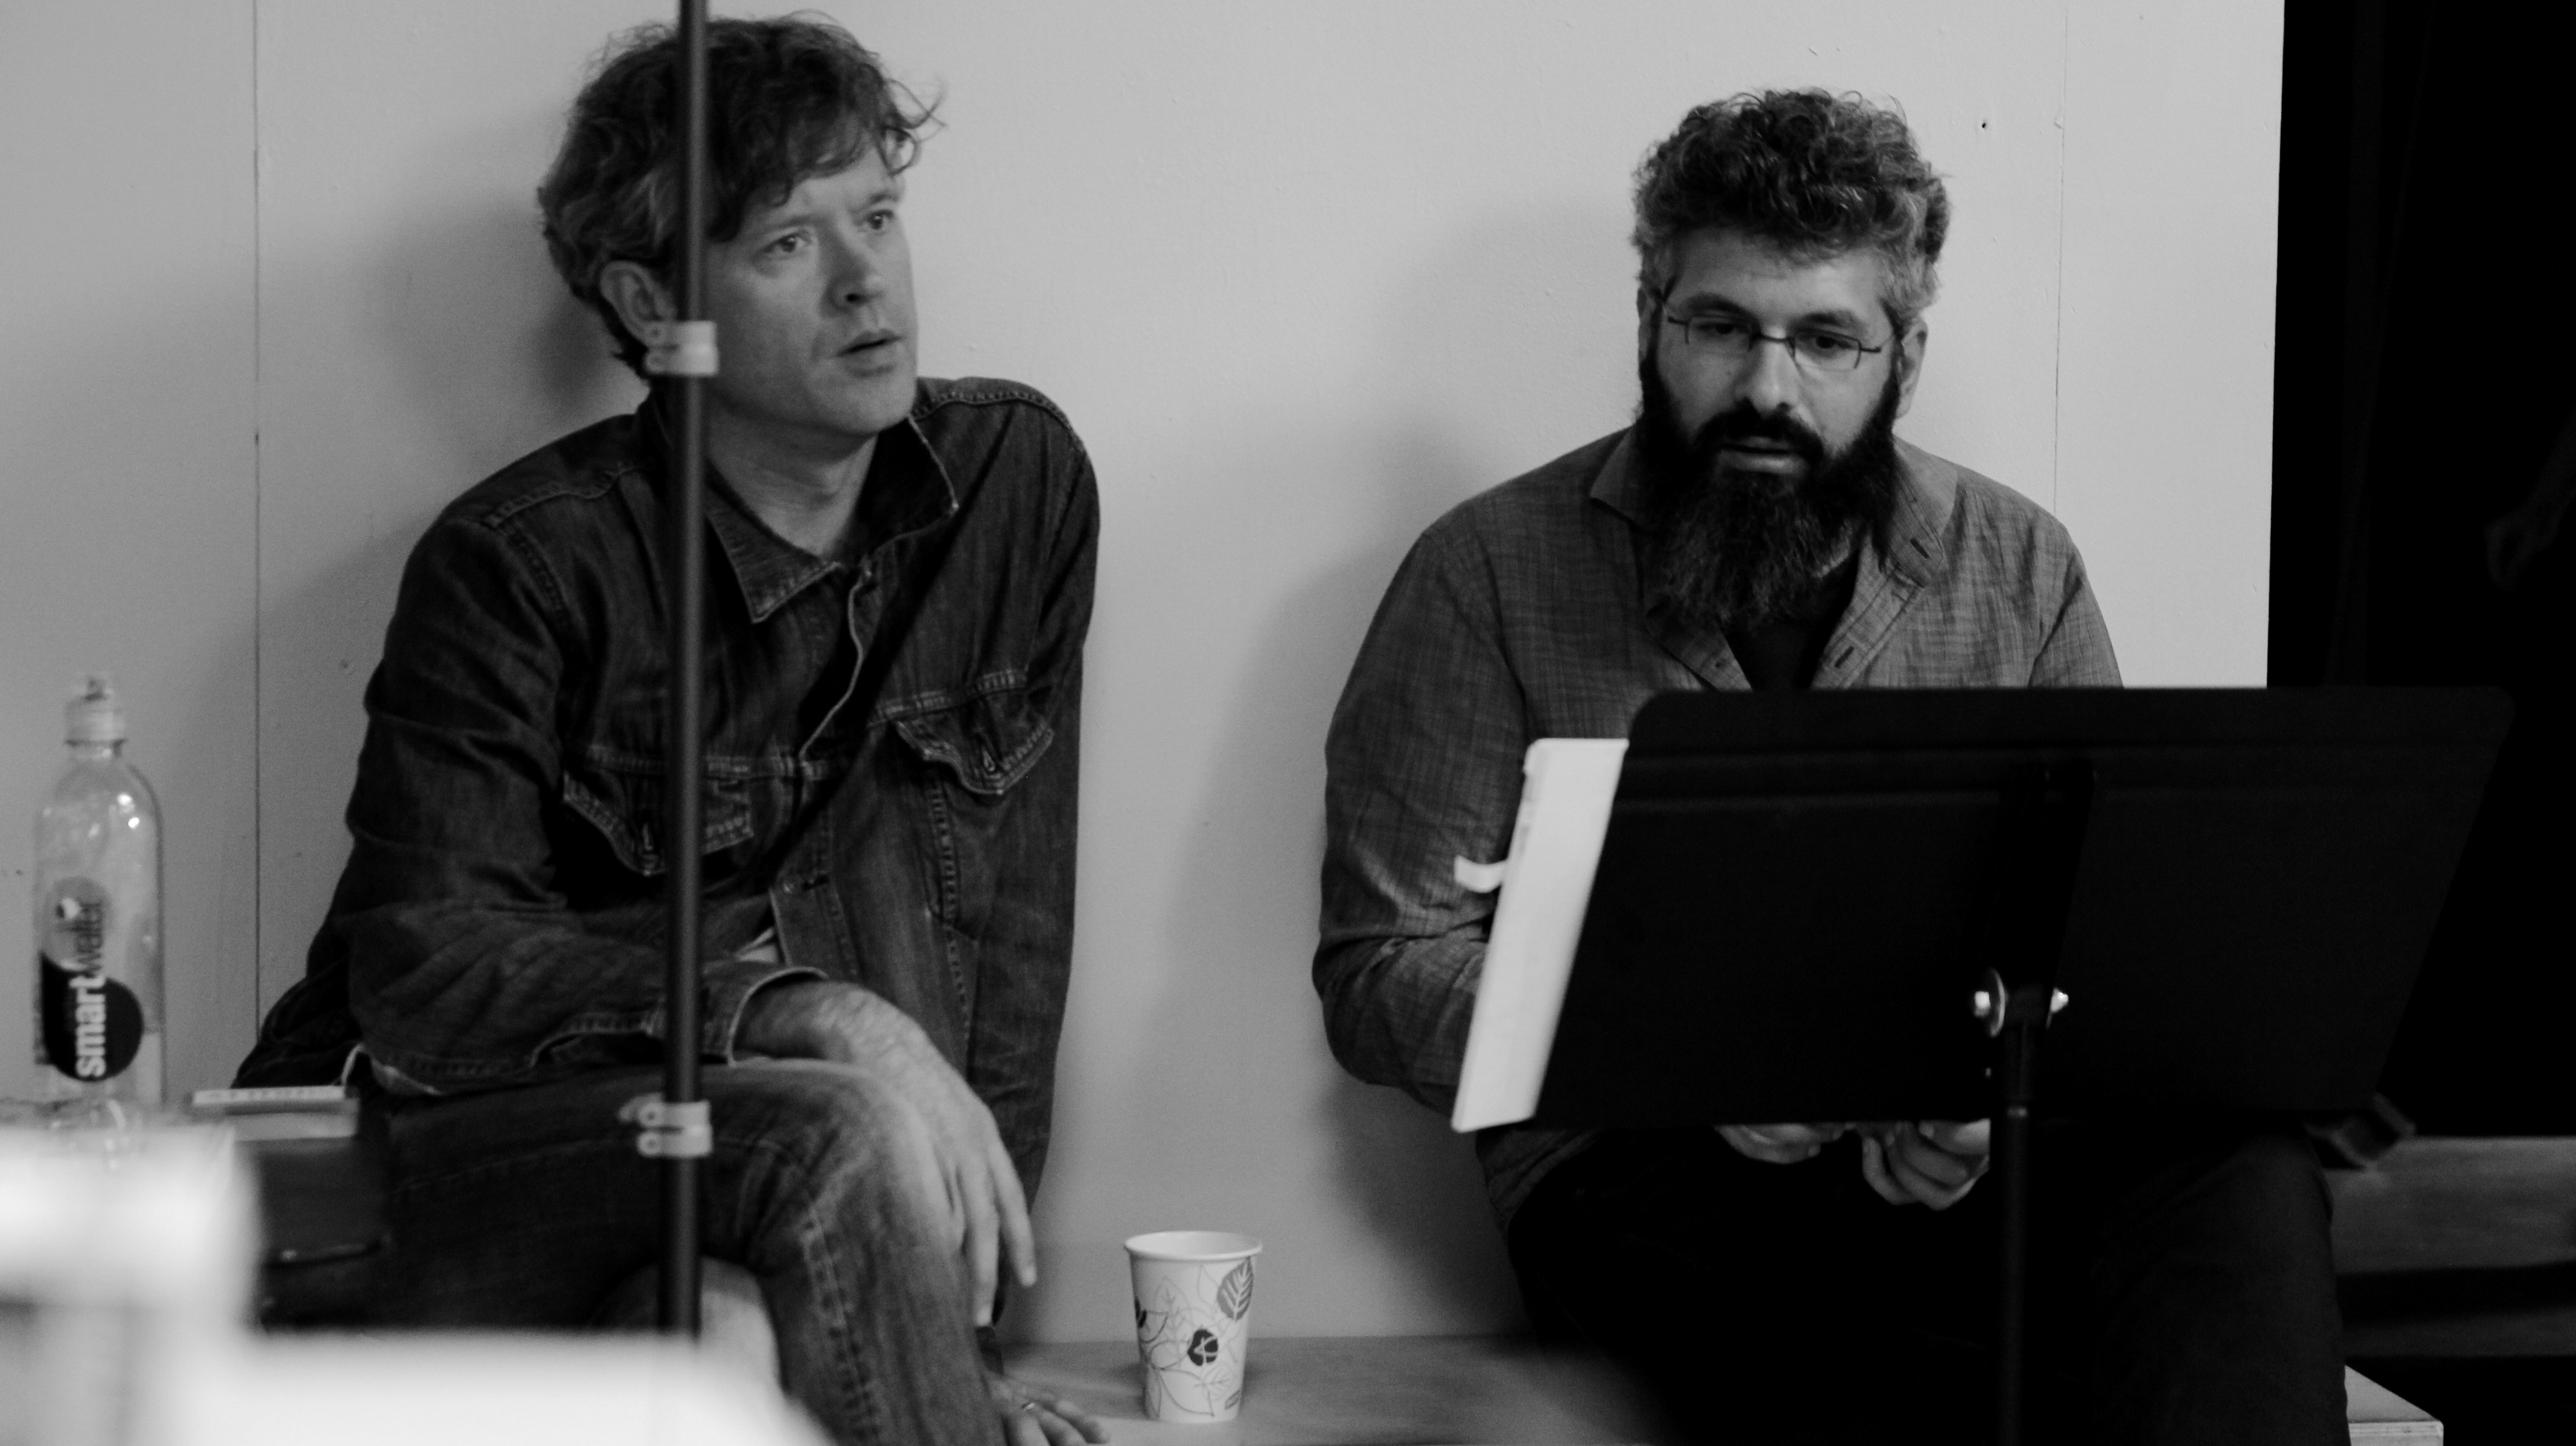 (L) Jay Scheib (R) Keeril Makan. Photo courtesy of the artists